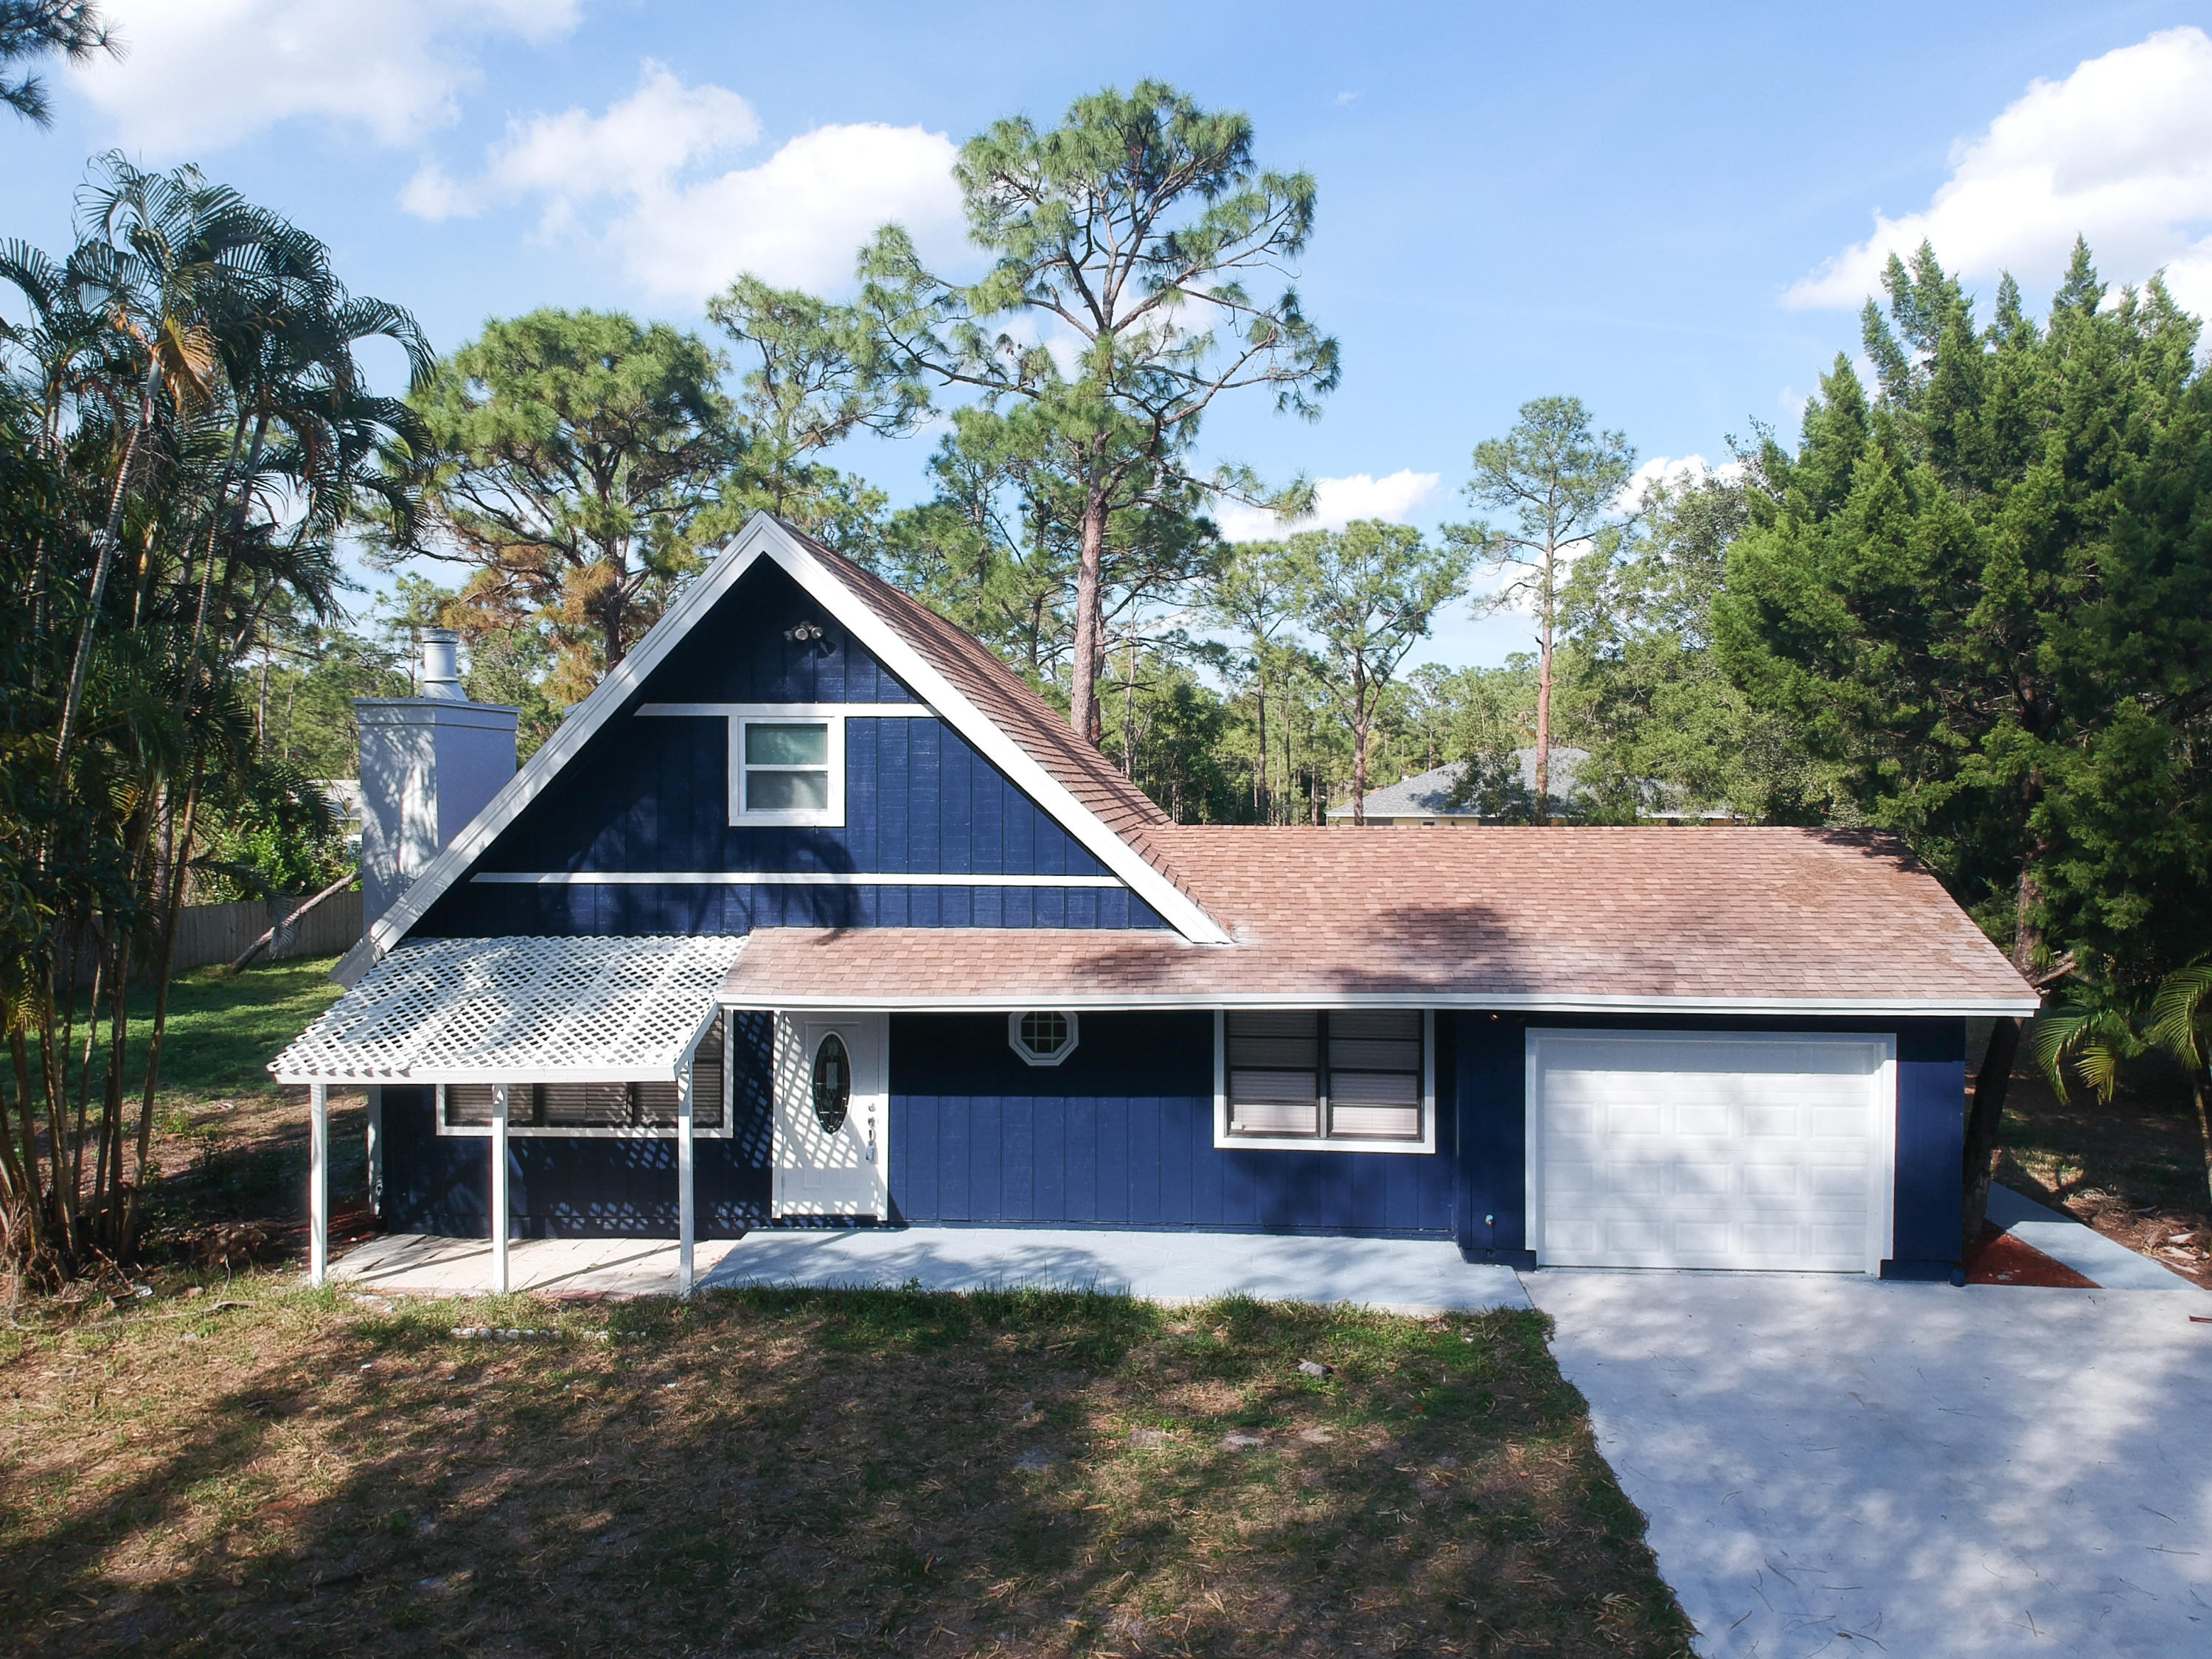 13557 156th Street, Jupiter, Florida 33478, 3 Bedrooms Bedrooms, ,2 BathroomsBathrooms,Single Family,For Sale,156th,1,RX-10491712